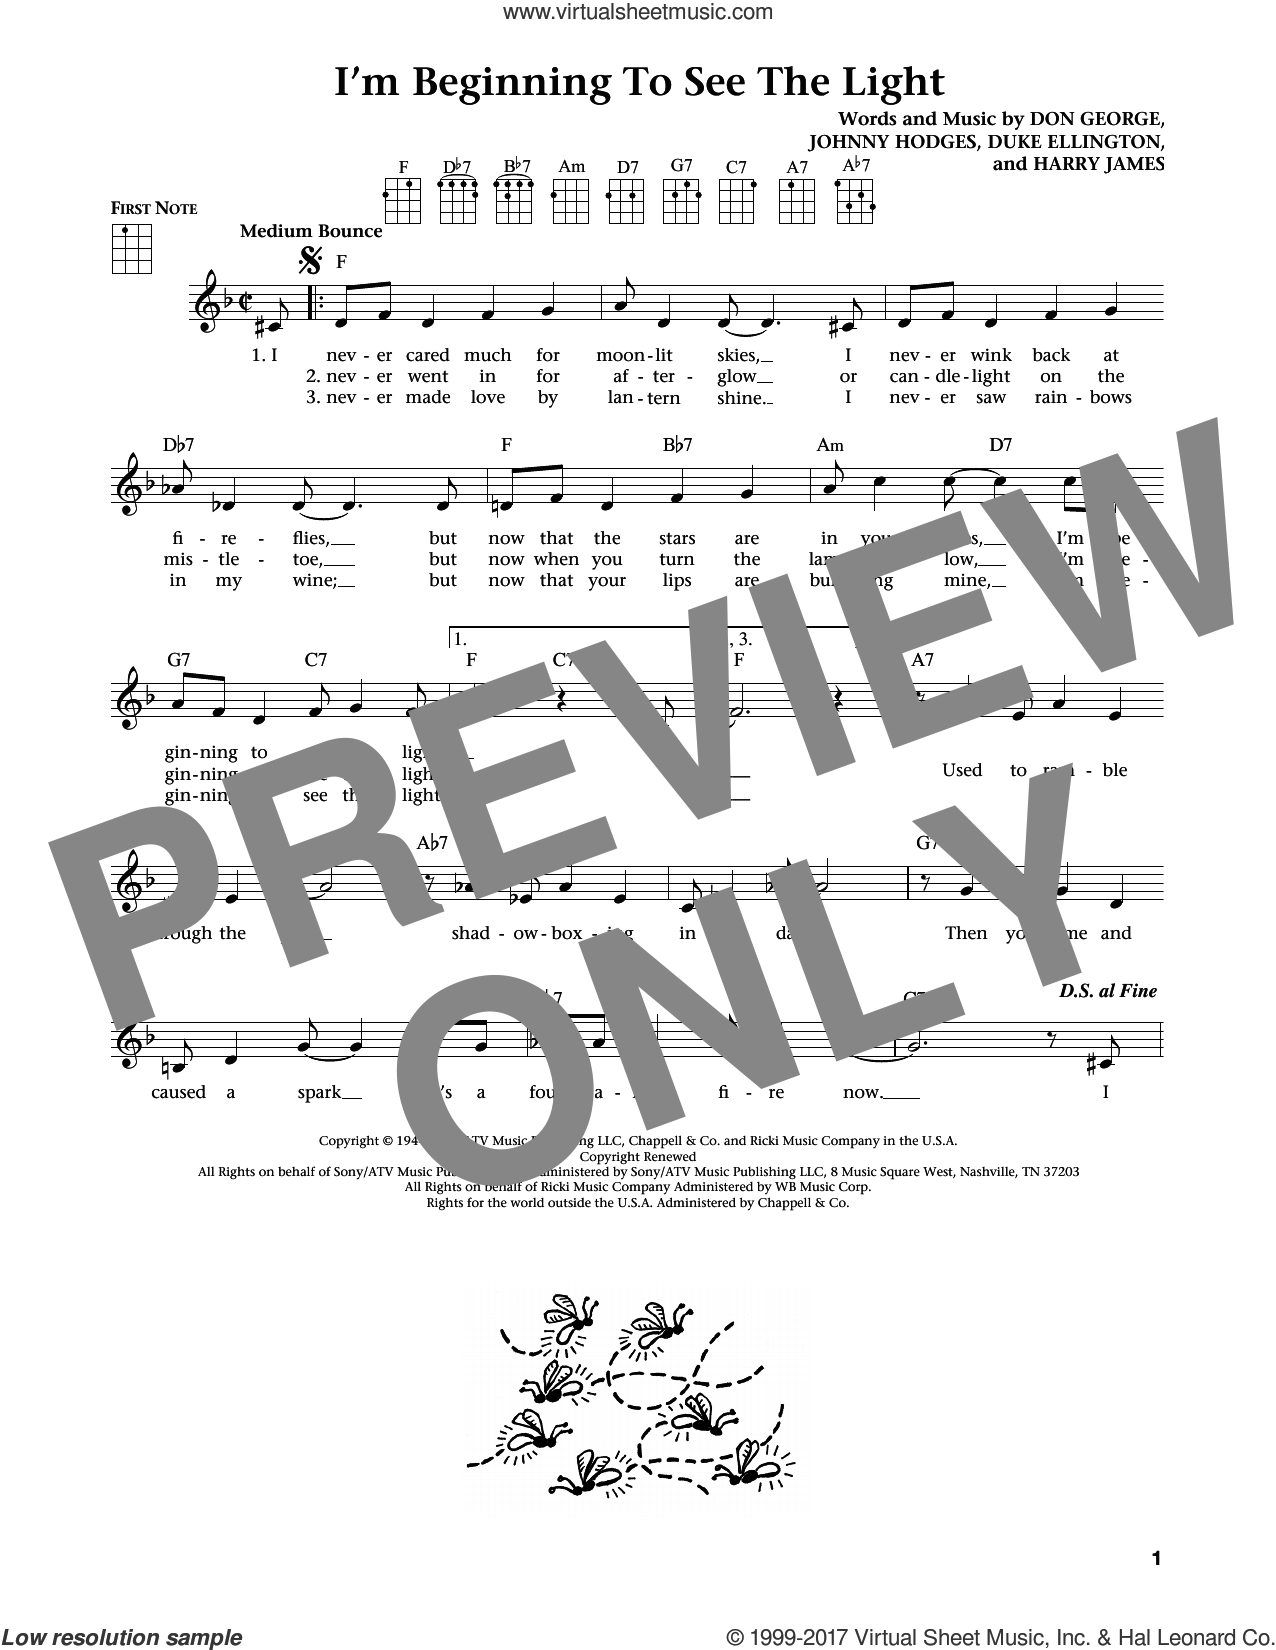 I'm Beginning To See The Light (from The Daily Ukulele) (arr. Liz and Jim Beloff) sheet music for ukulele by Duke Ellington, Jim Beloff, Liz Beloff, Don George, Harry James and Johnny Hodges, intermediate skill level